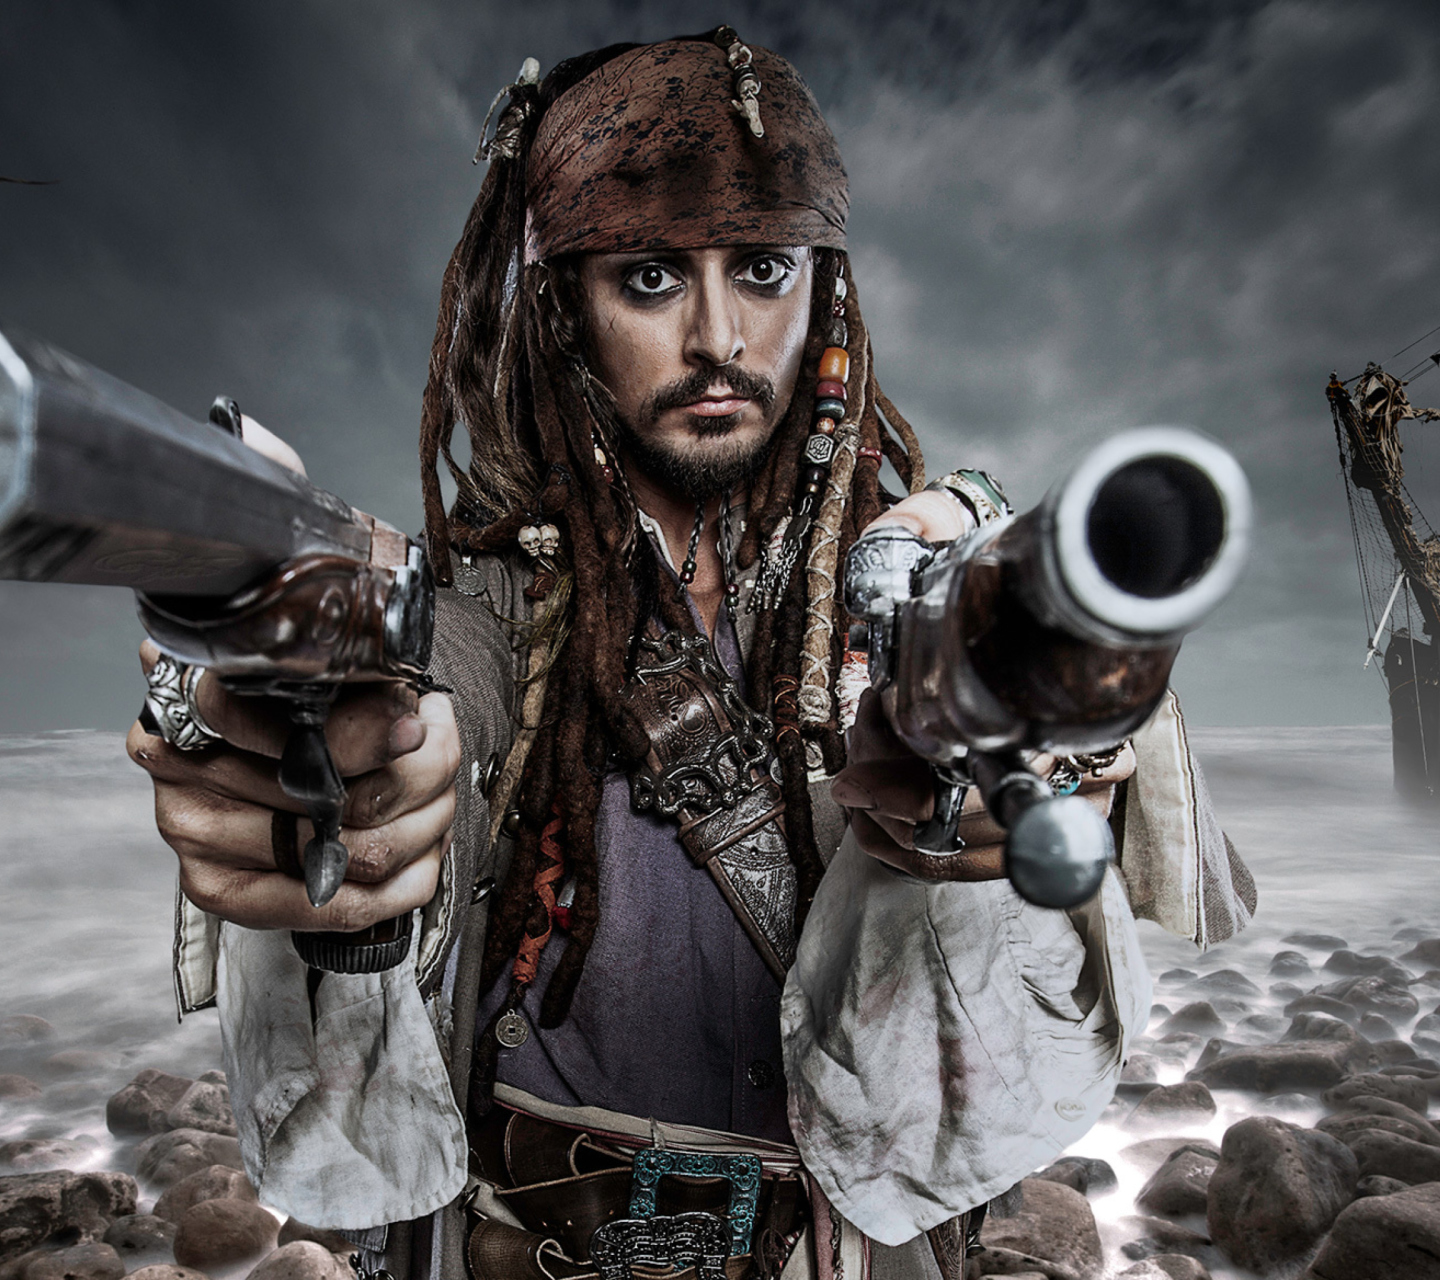 pirates of the caribbean wallpaper 720x1280